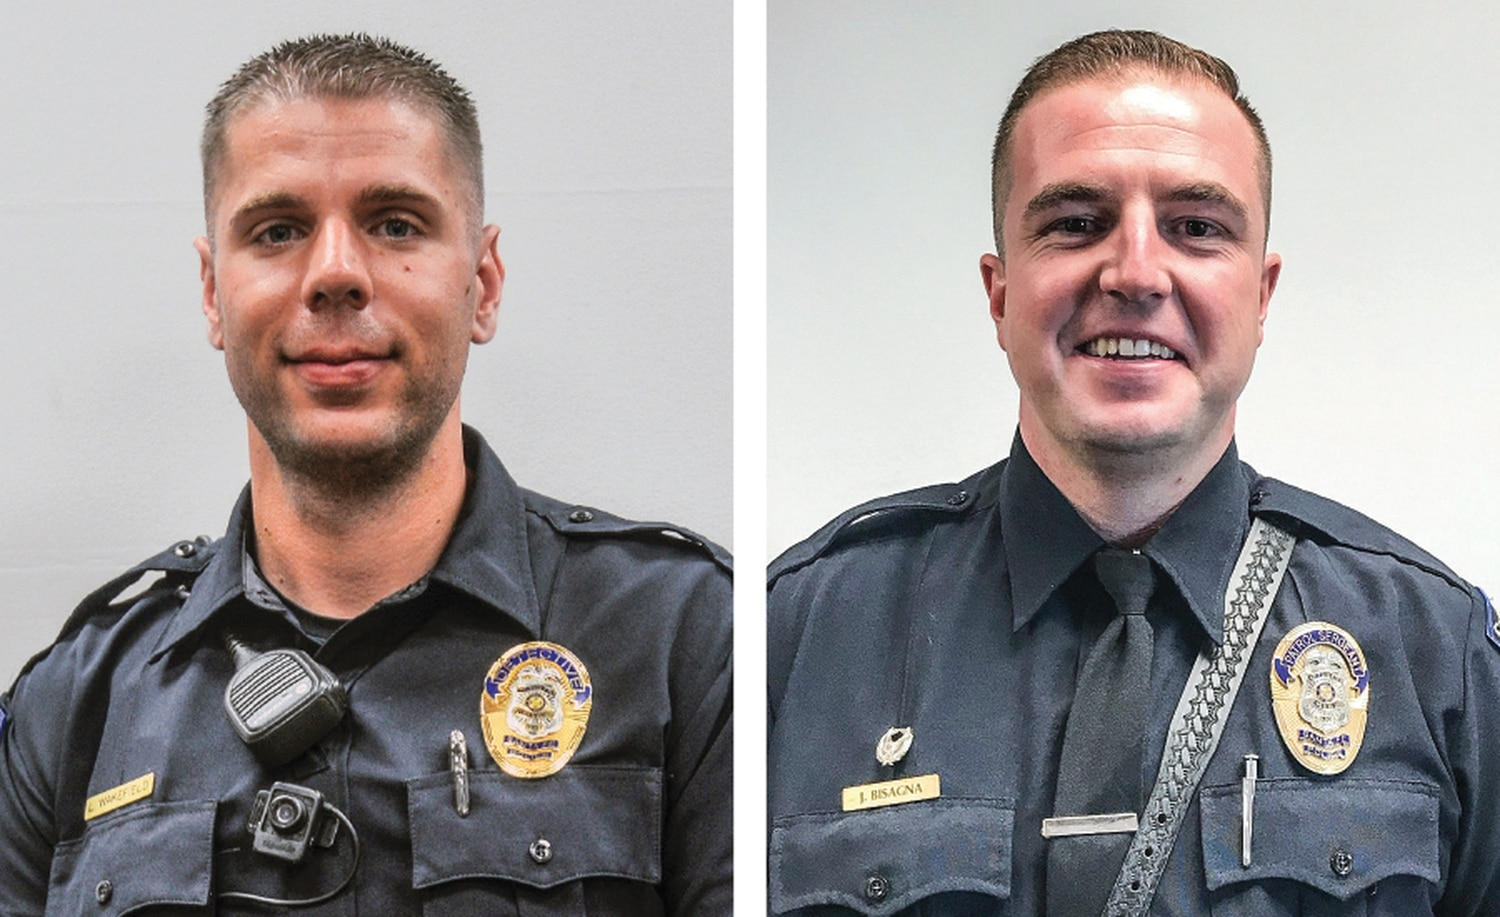 Officers Luke Wakefield (left), and Jeramie Bisagna (right), who shot at Benavidez, now hold the ranks of detective and sergeant, respectively.